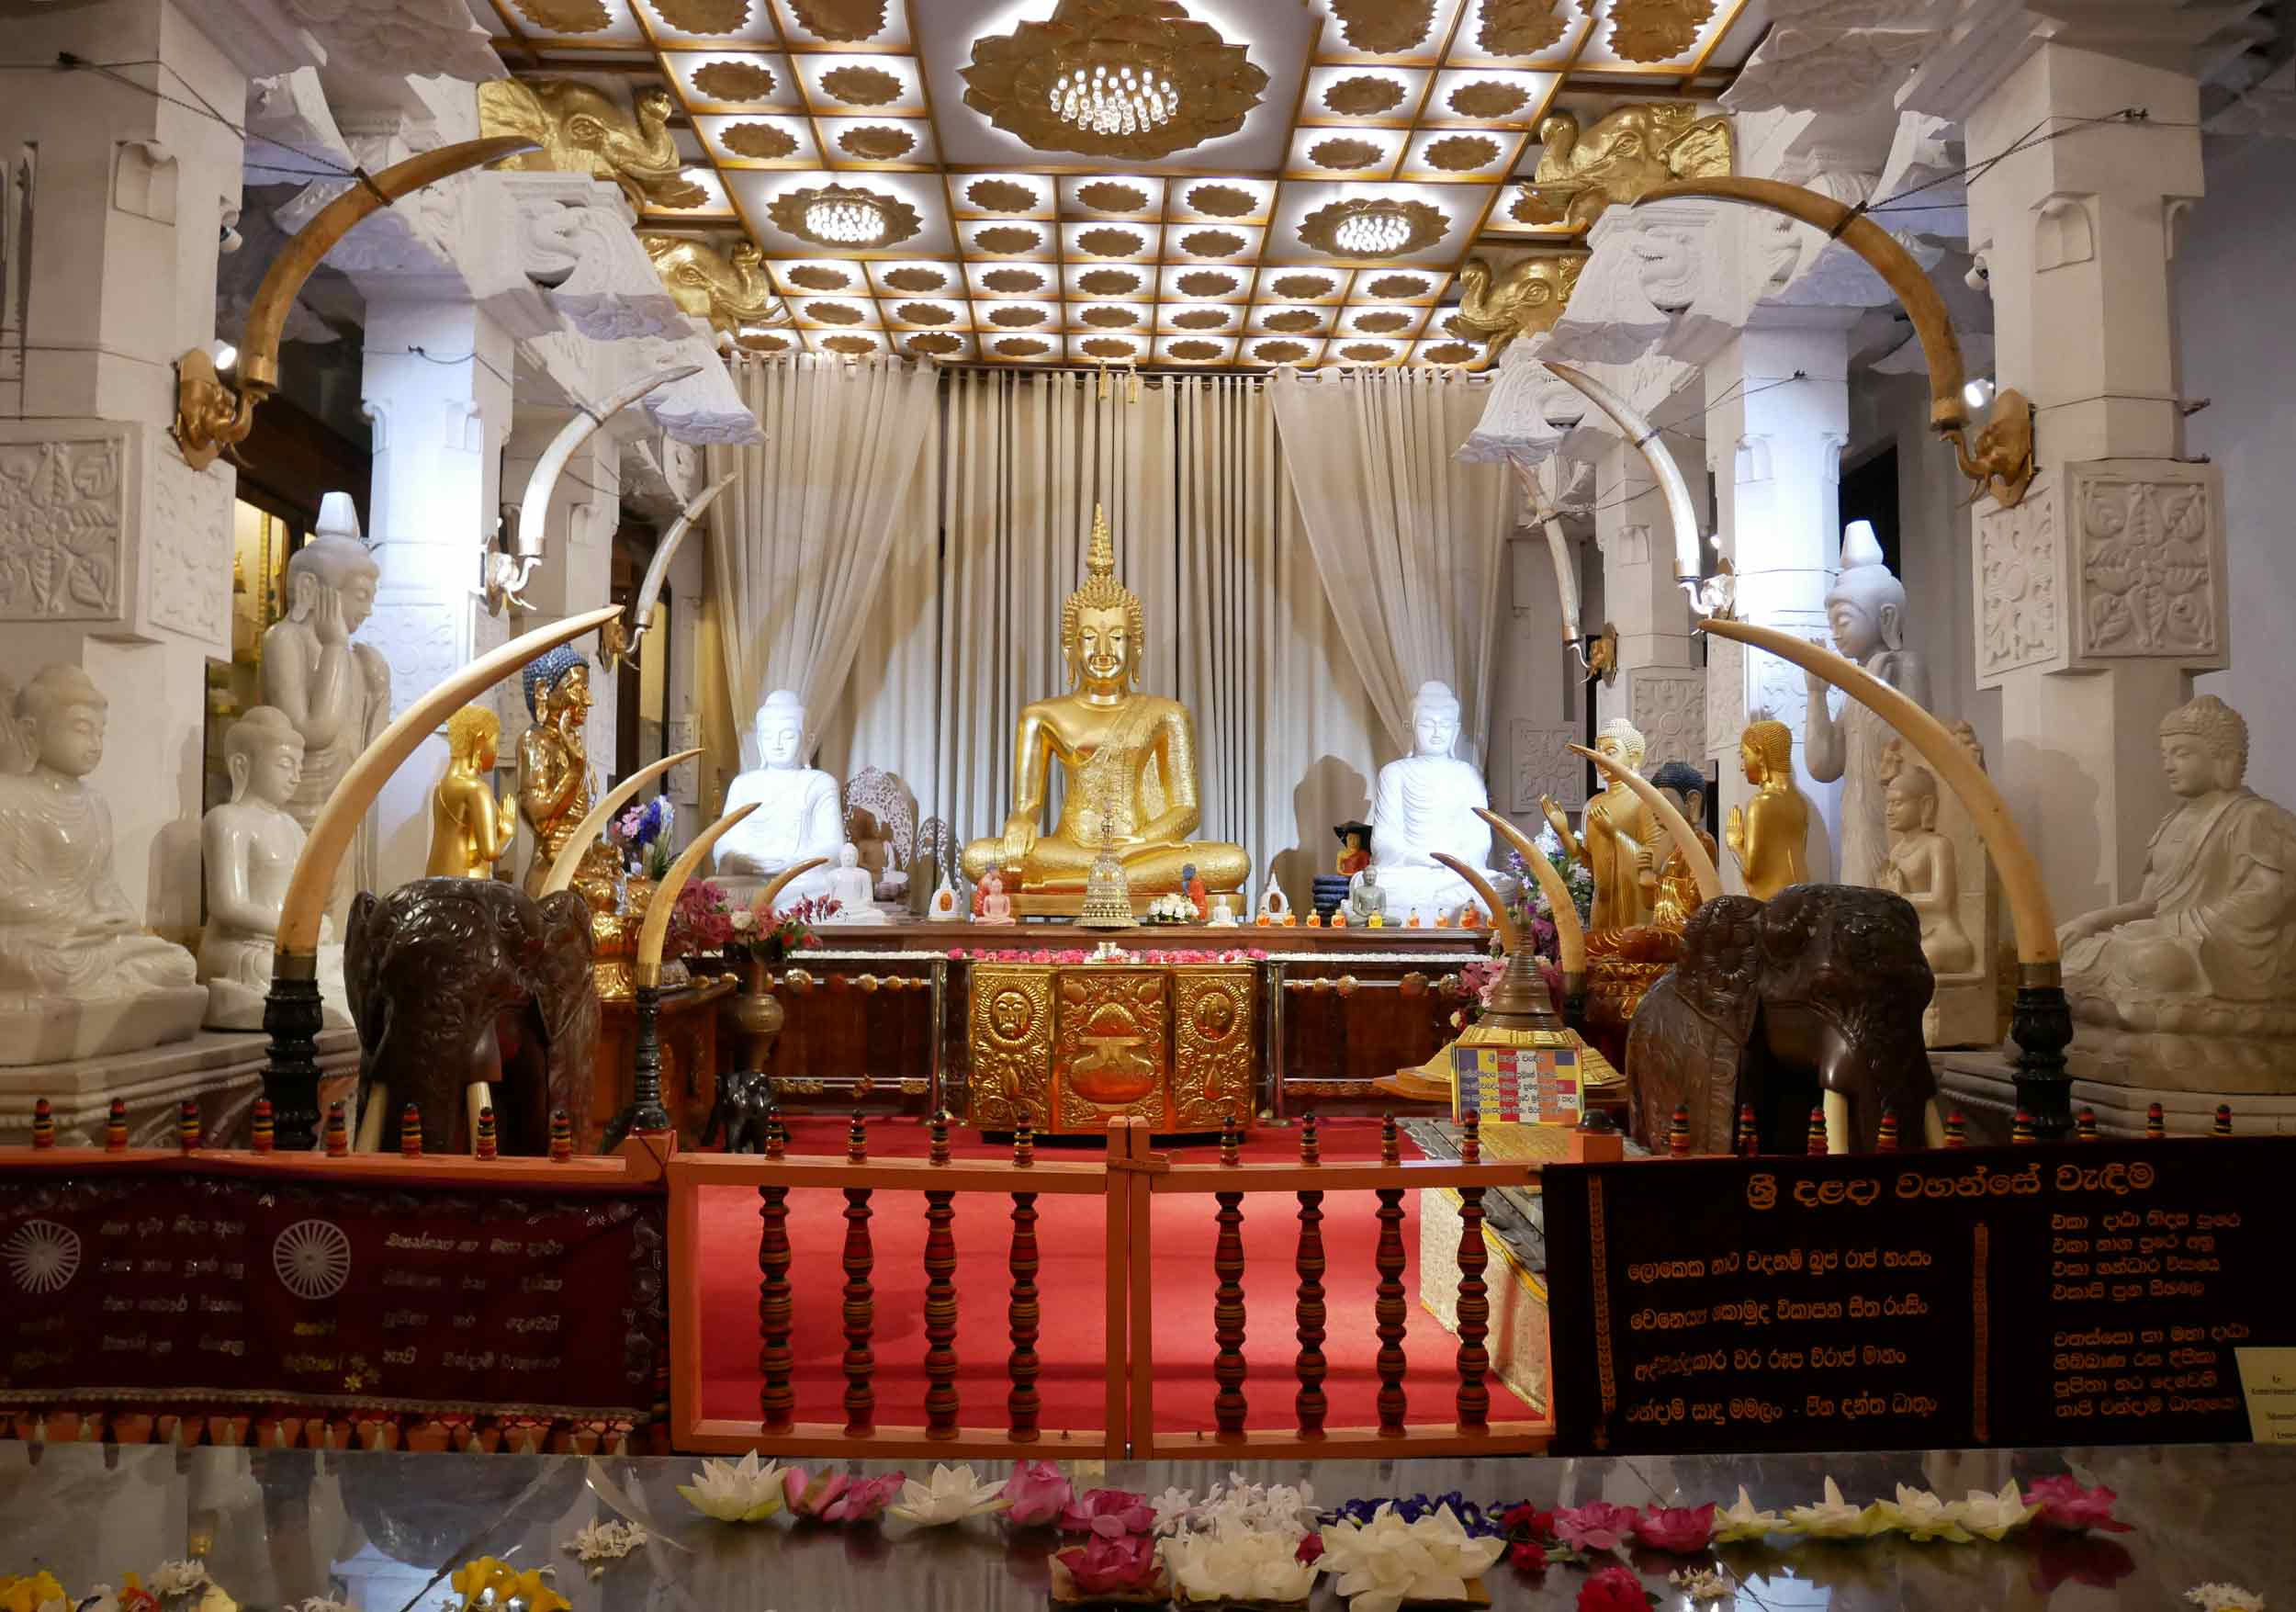 Statue of Lord Buddha in Kandy's Temple of the Sacred Tooth Relic (Dec 13).